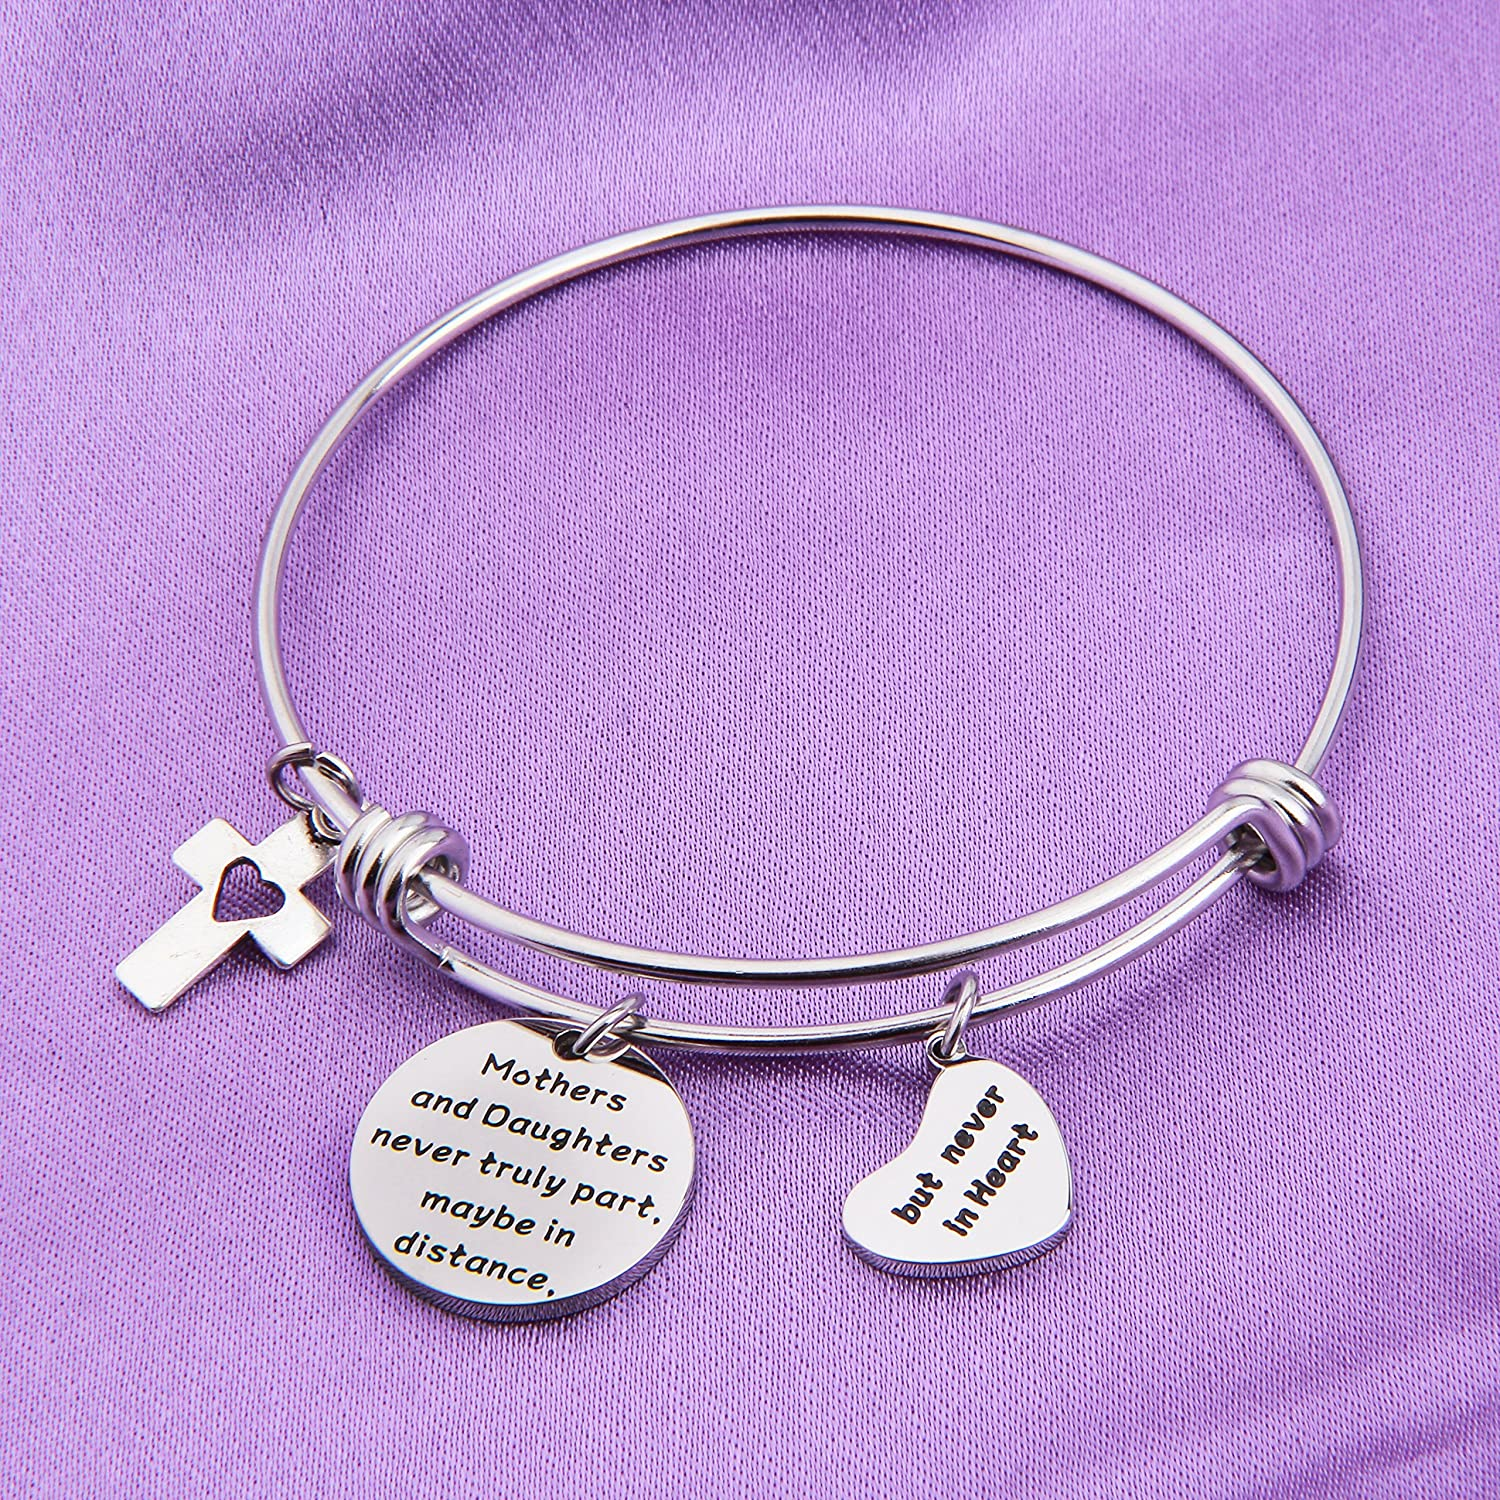 MAOFAED Mother Daughter Bracelet Mothers and Daughters Never Truely Part Maybe in Distance But Never in Heart